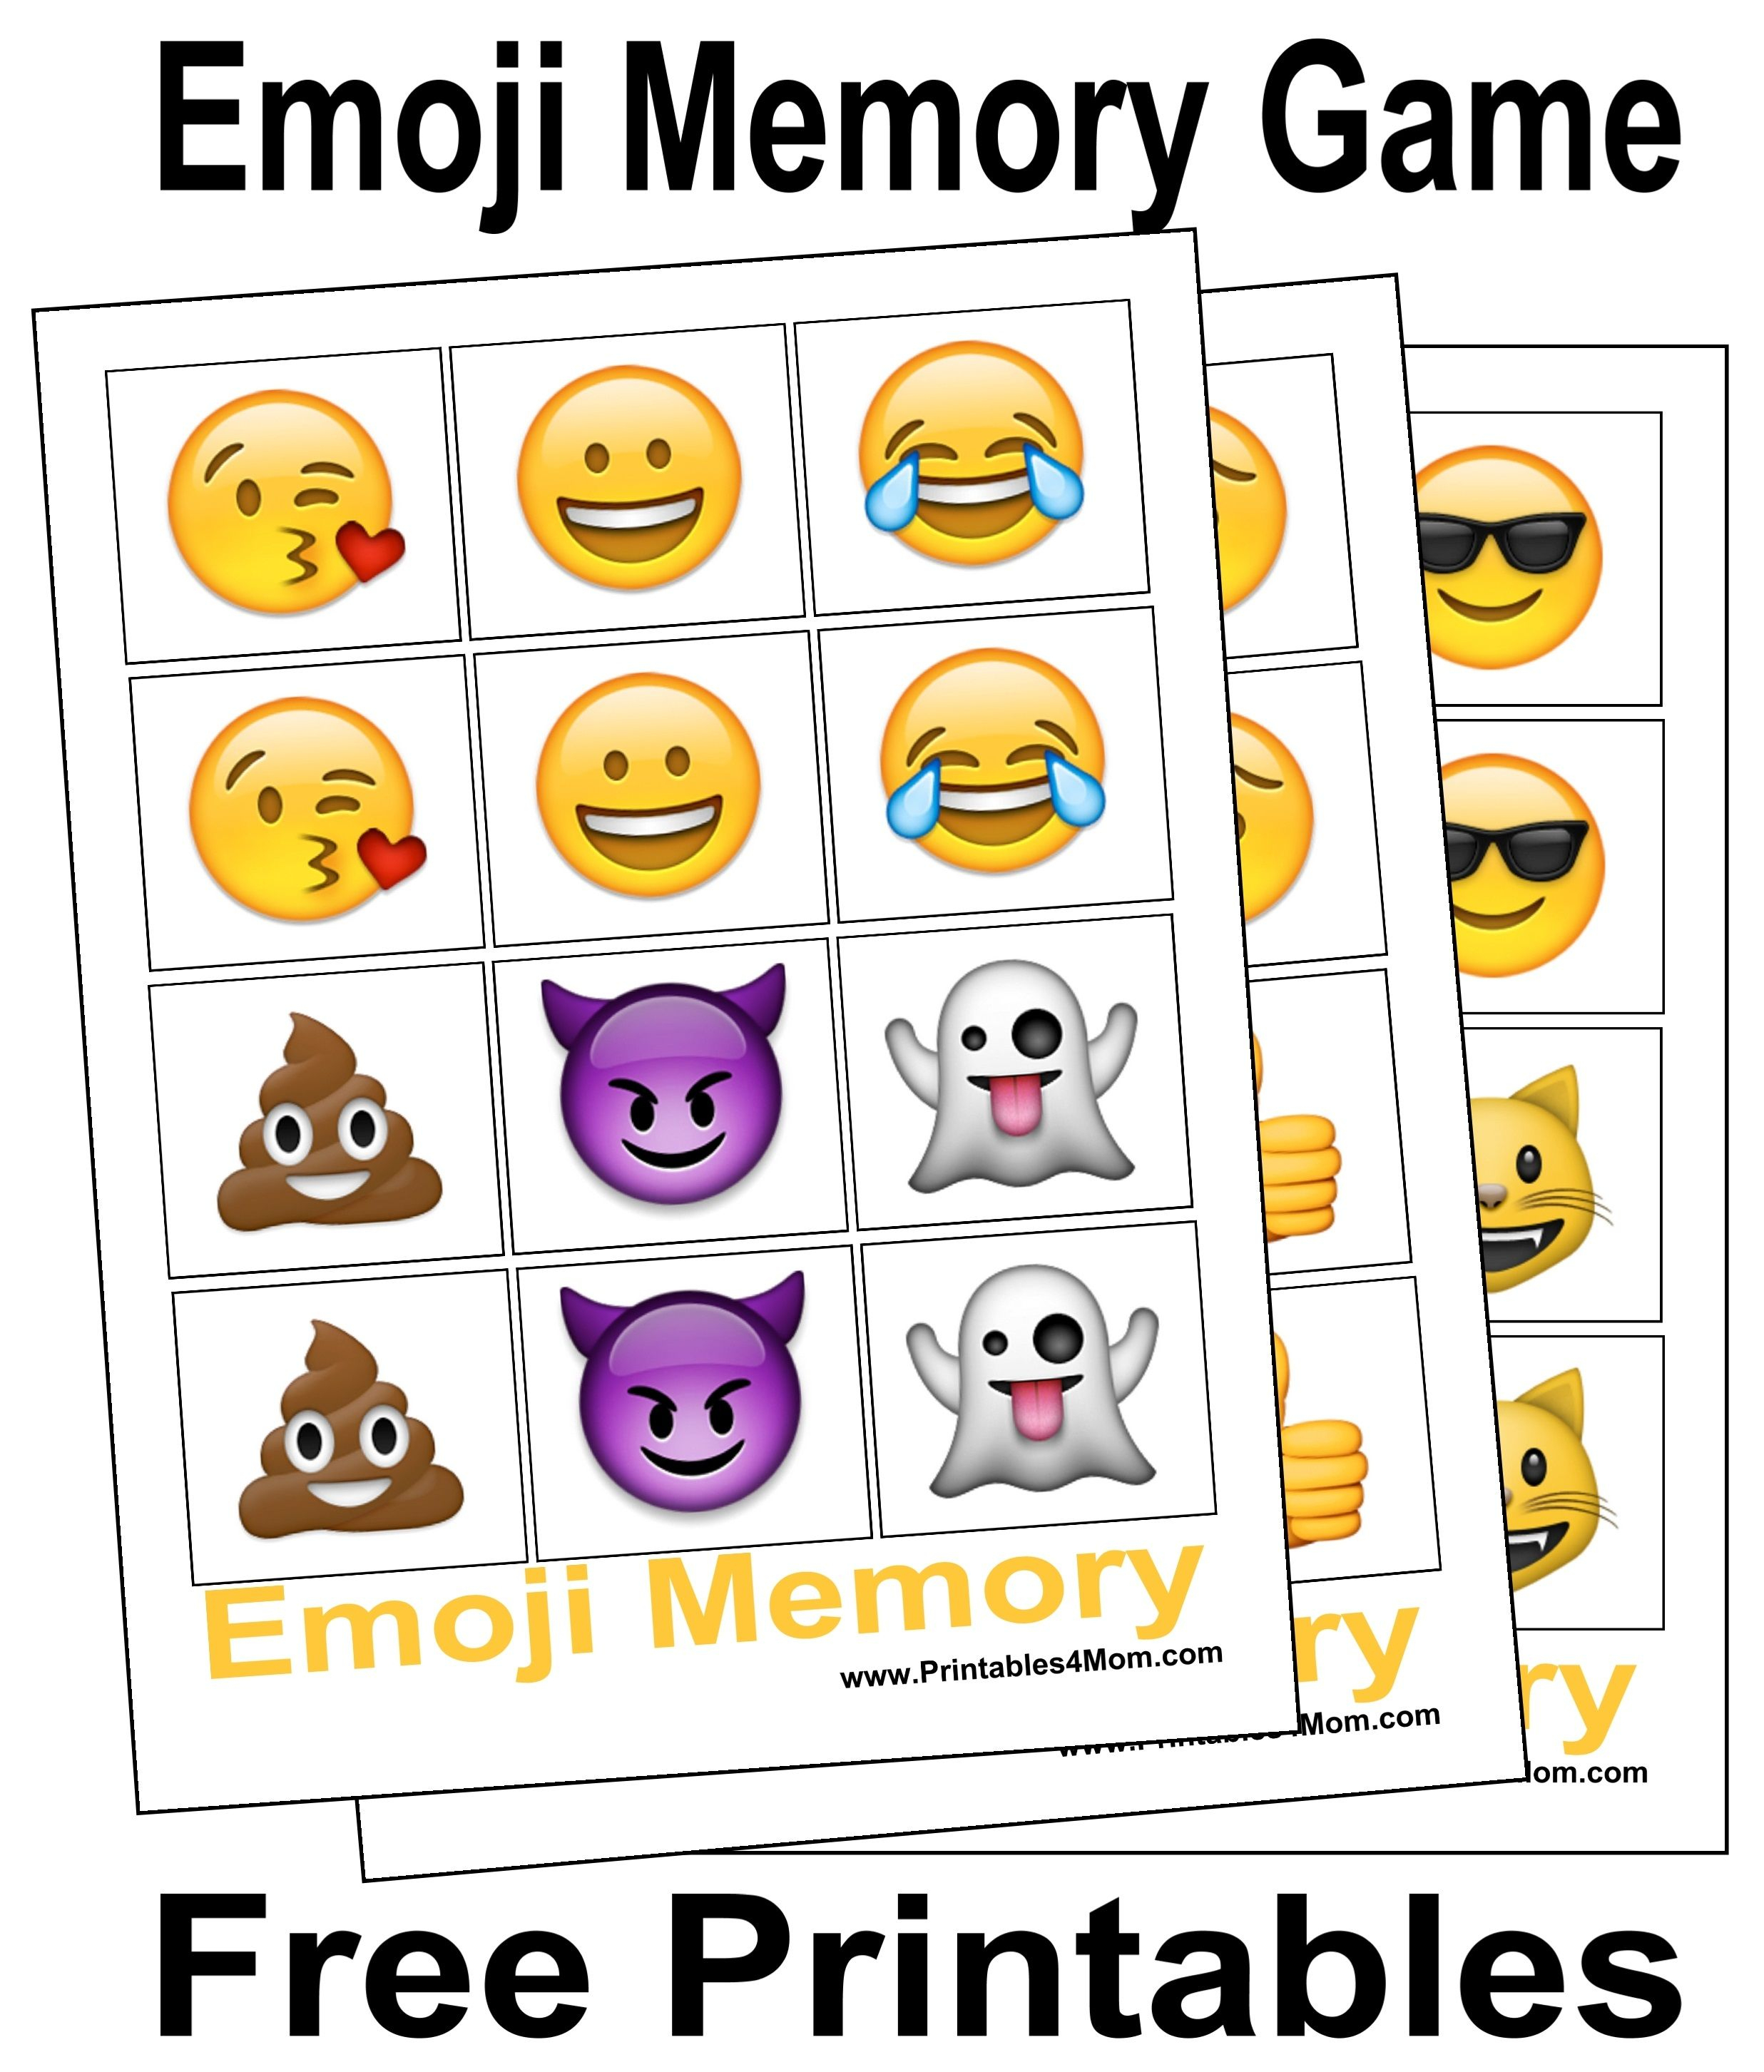 10 Free, Last Minute Printable Stocking Stuffer Games | Emotions - Printable Emoji Puzzles